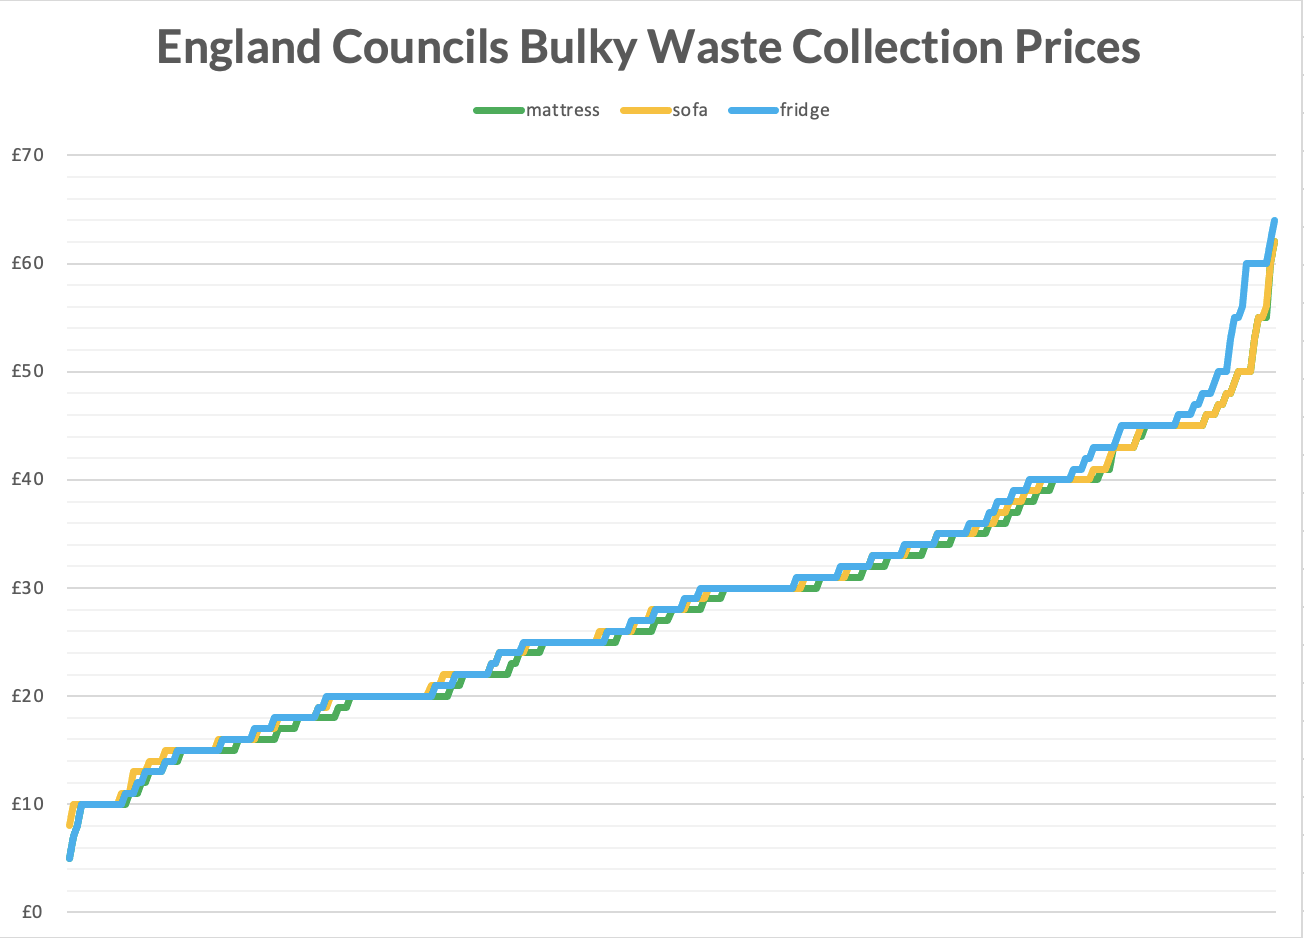 englands council bulky waste collection prices england line graph